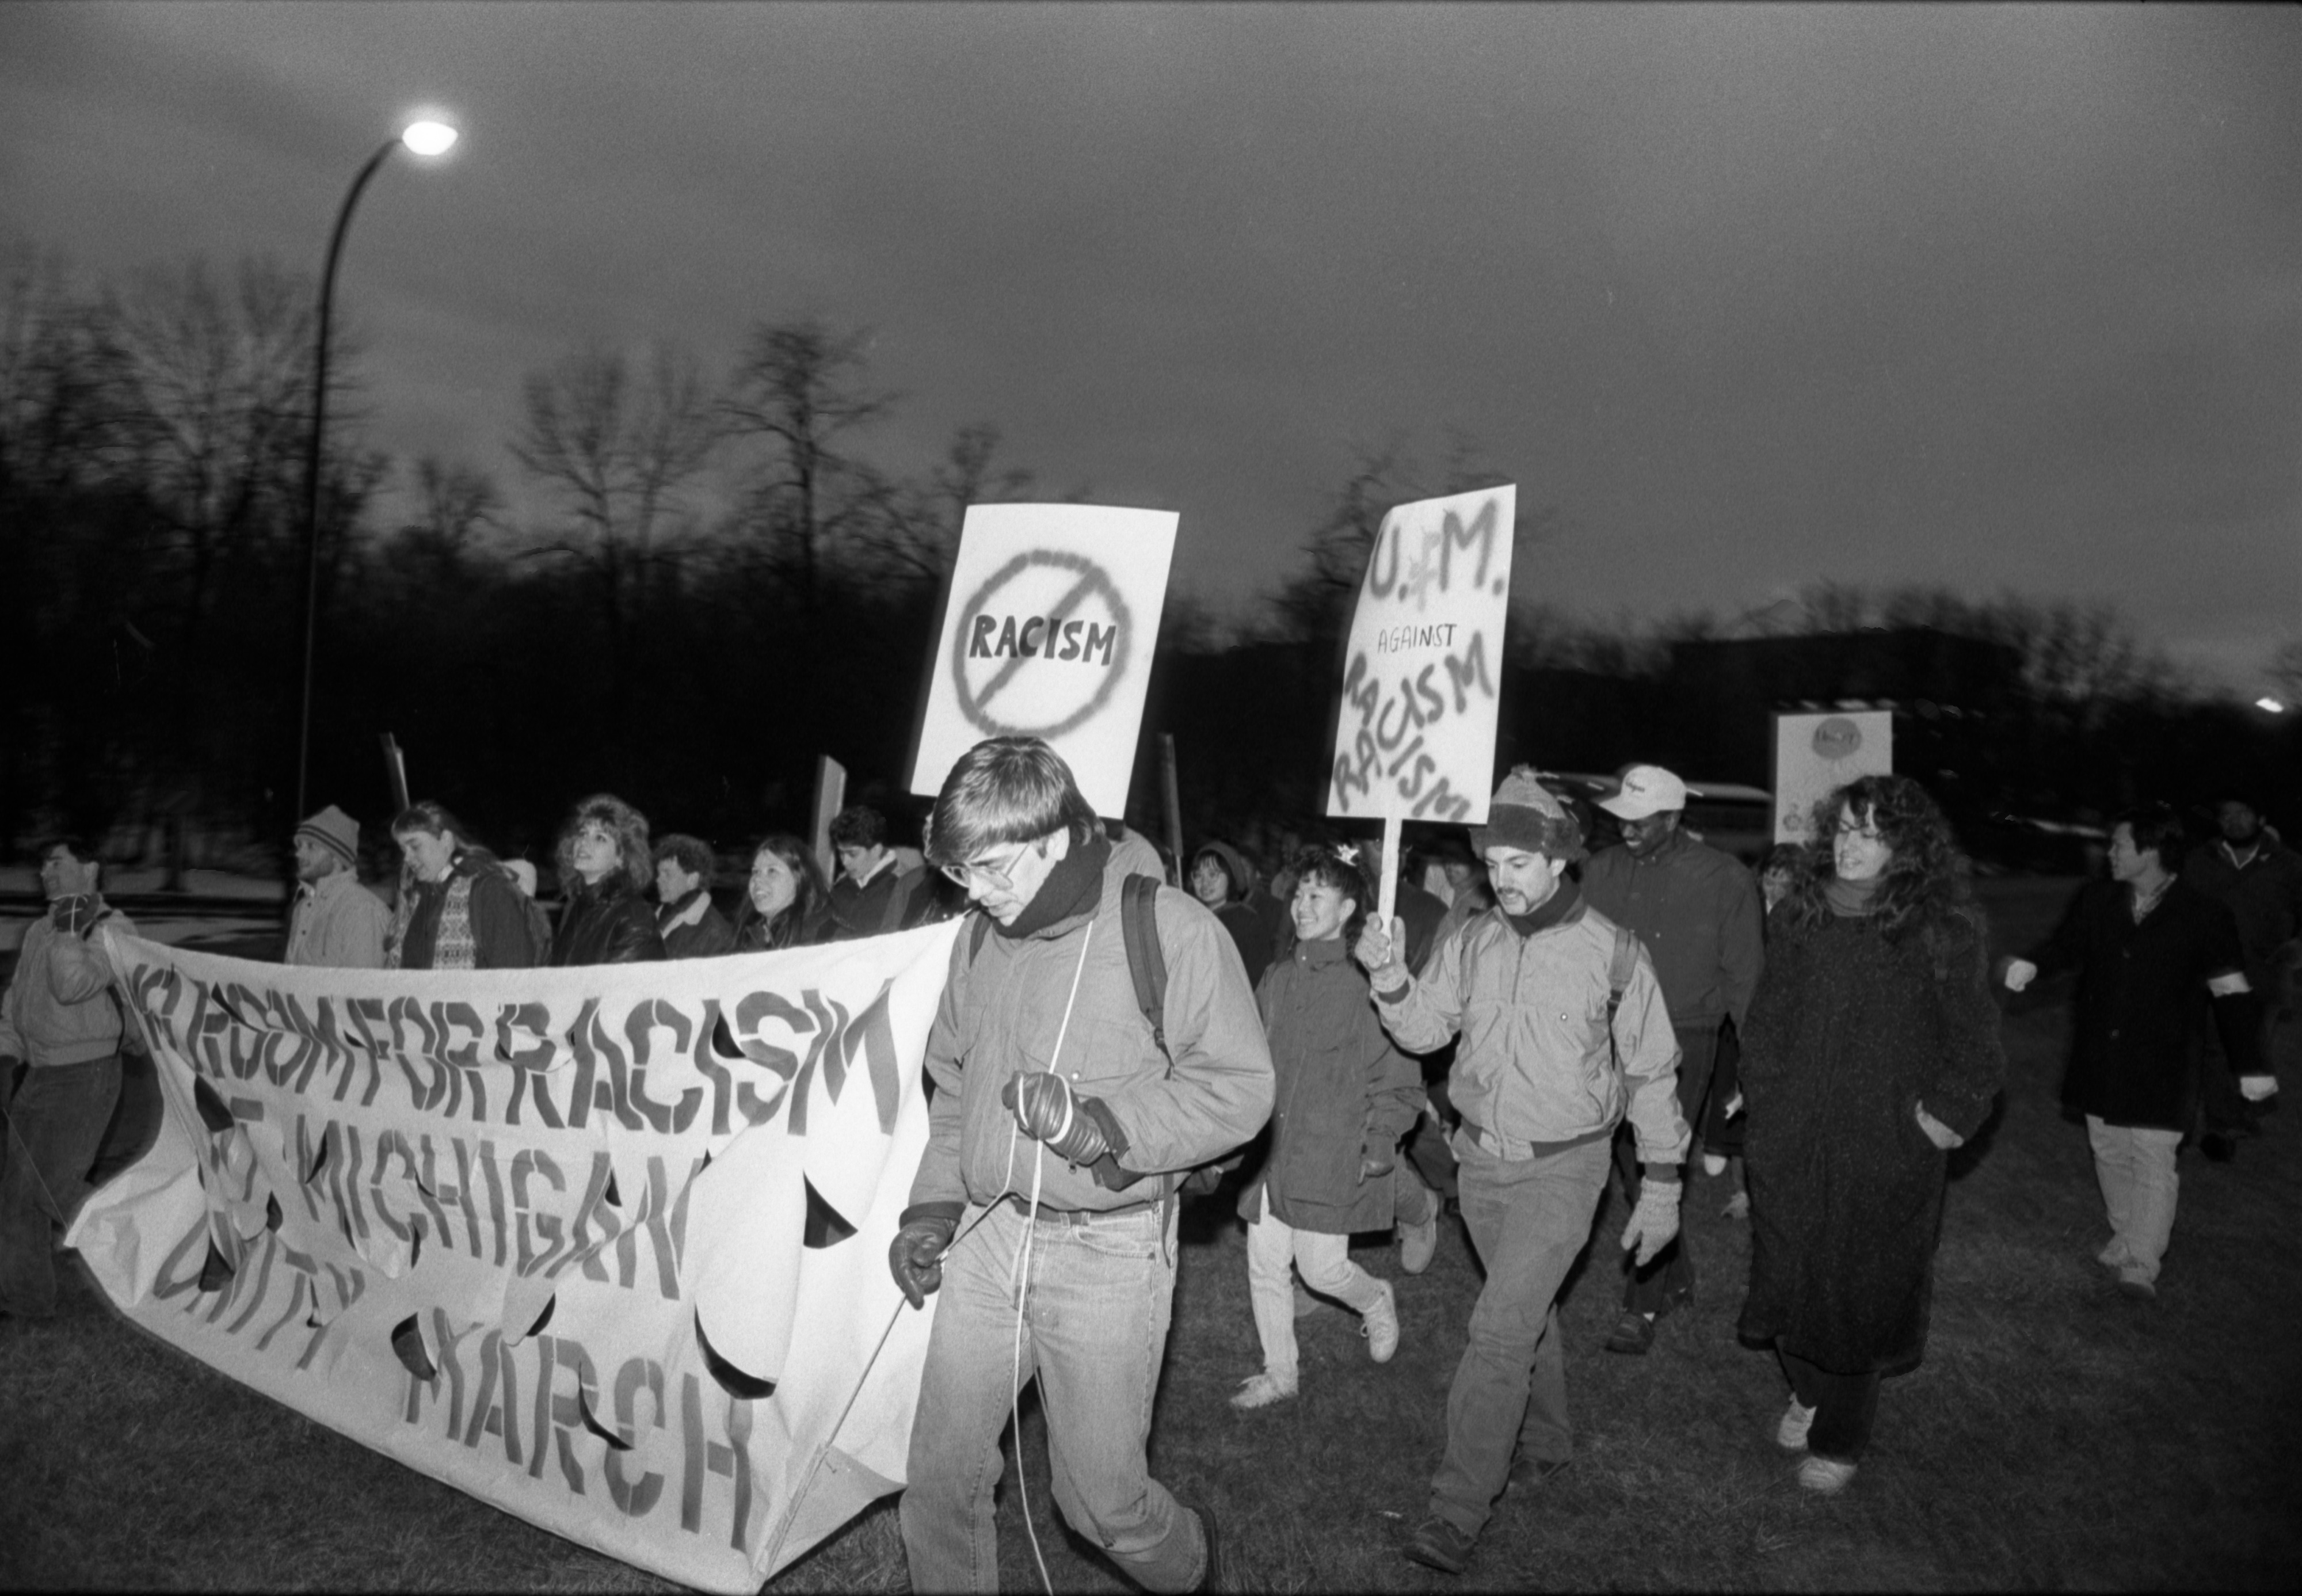 Participants Of U-M Anti-Racism Demonstration March To Alice Lloyd Hall, February 13, 1987 image